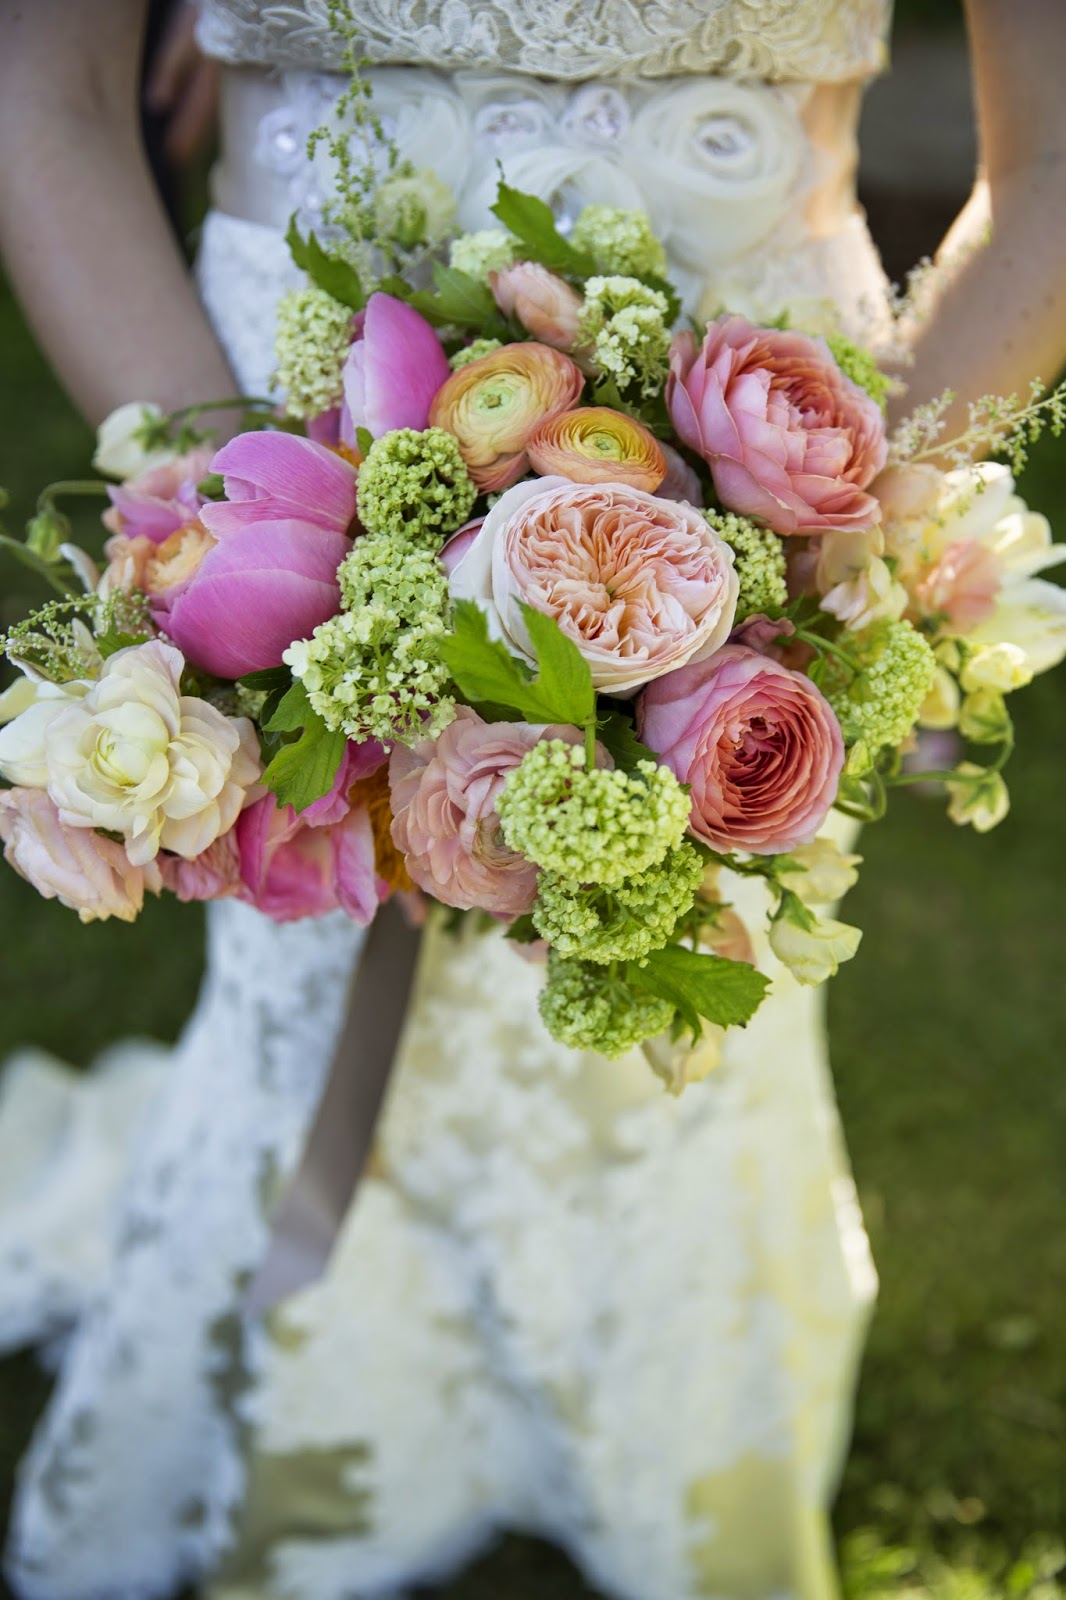 Coral peach and blush organic brides bouquet by Sweet Pea Floral Design Ann Arbor featuring romantic antike garden roses, juliet garden roses, coral charm peonies, ranunculus, viburnum parrot tulips and astlilbe